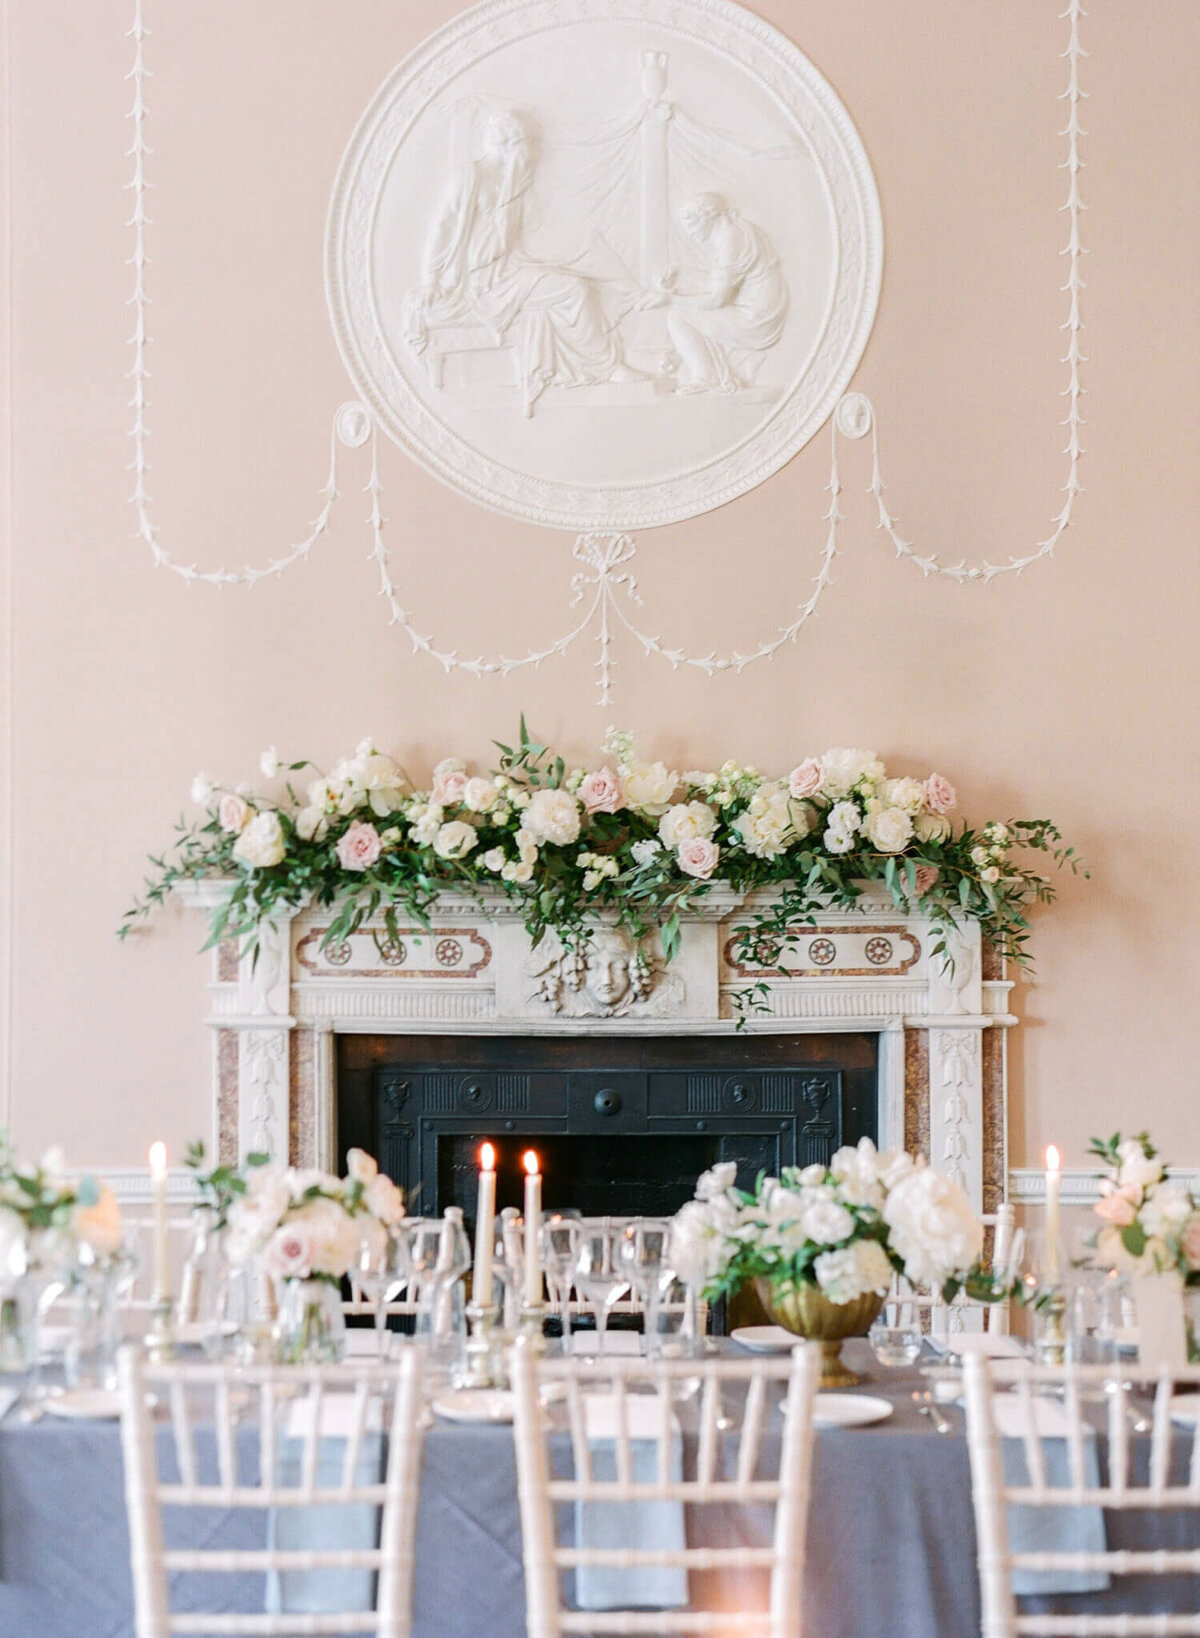 Ireland & US Wedding Planner, reception table by fireplace